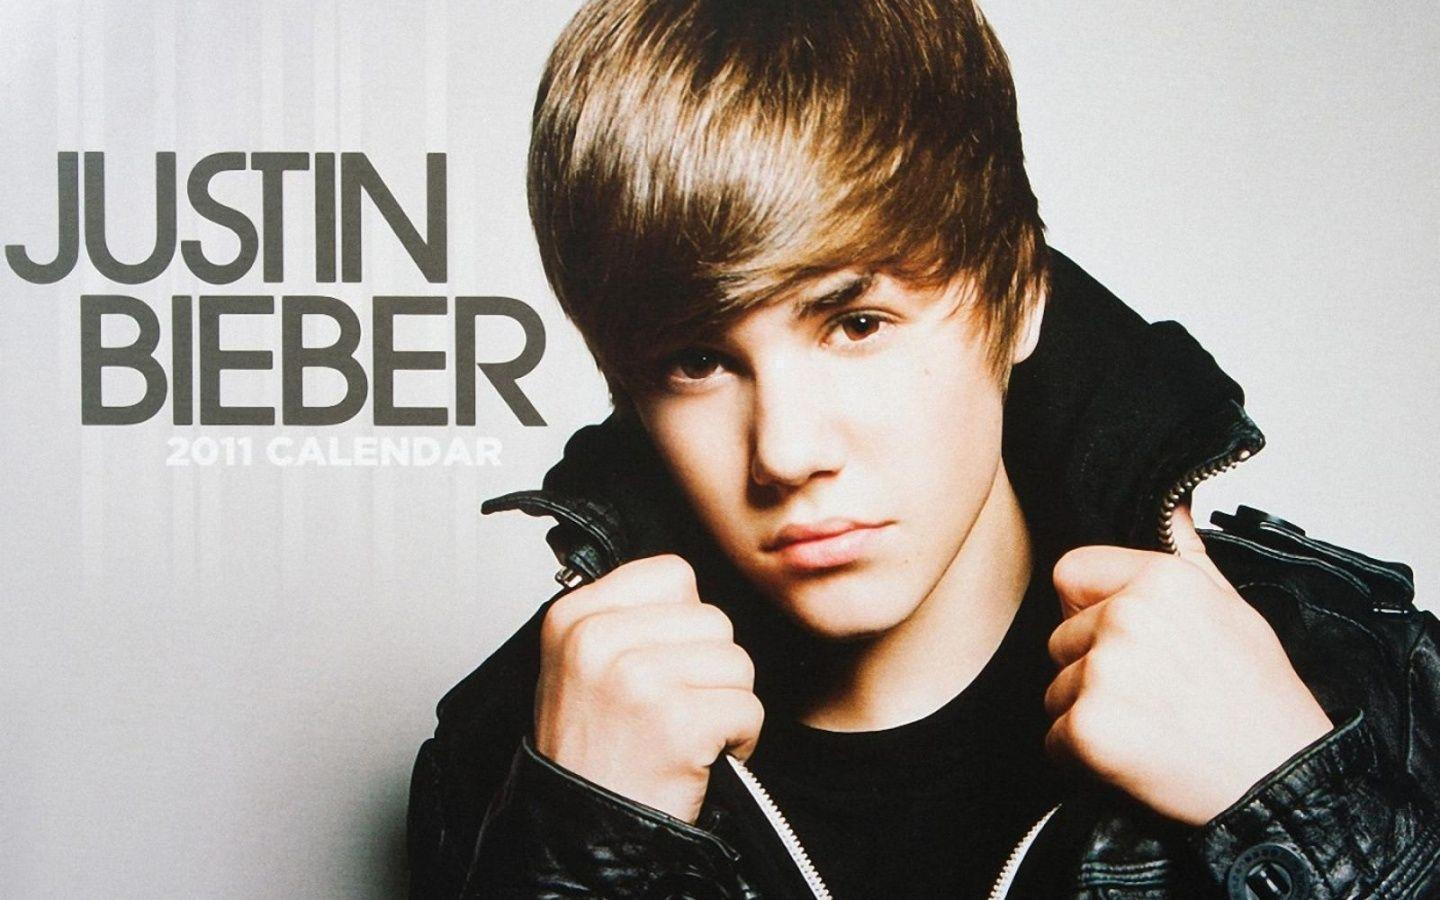 1440x900 Justin Bieber 2011 Calendar desktop PC and Mac wallpaper